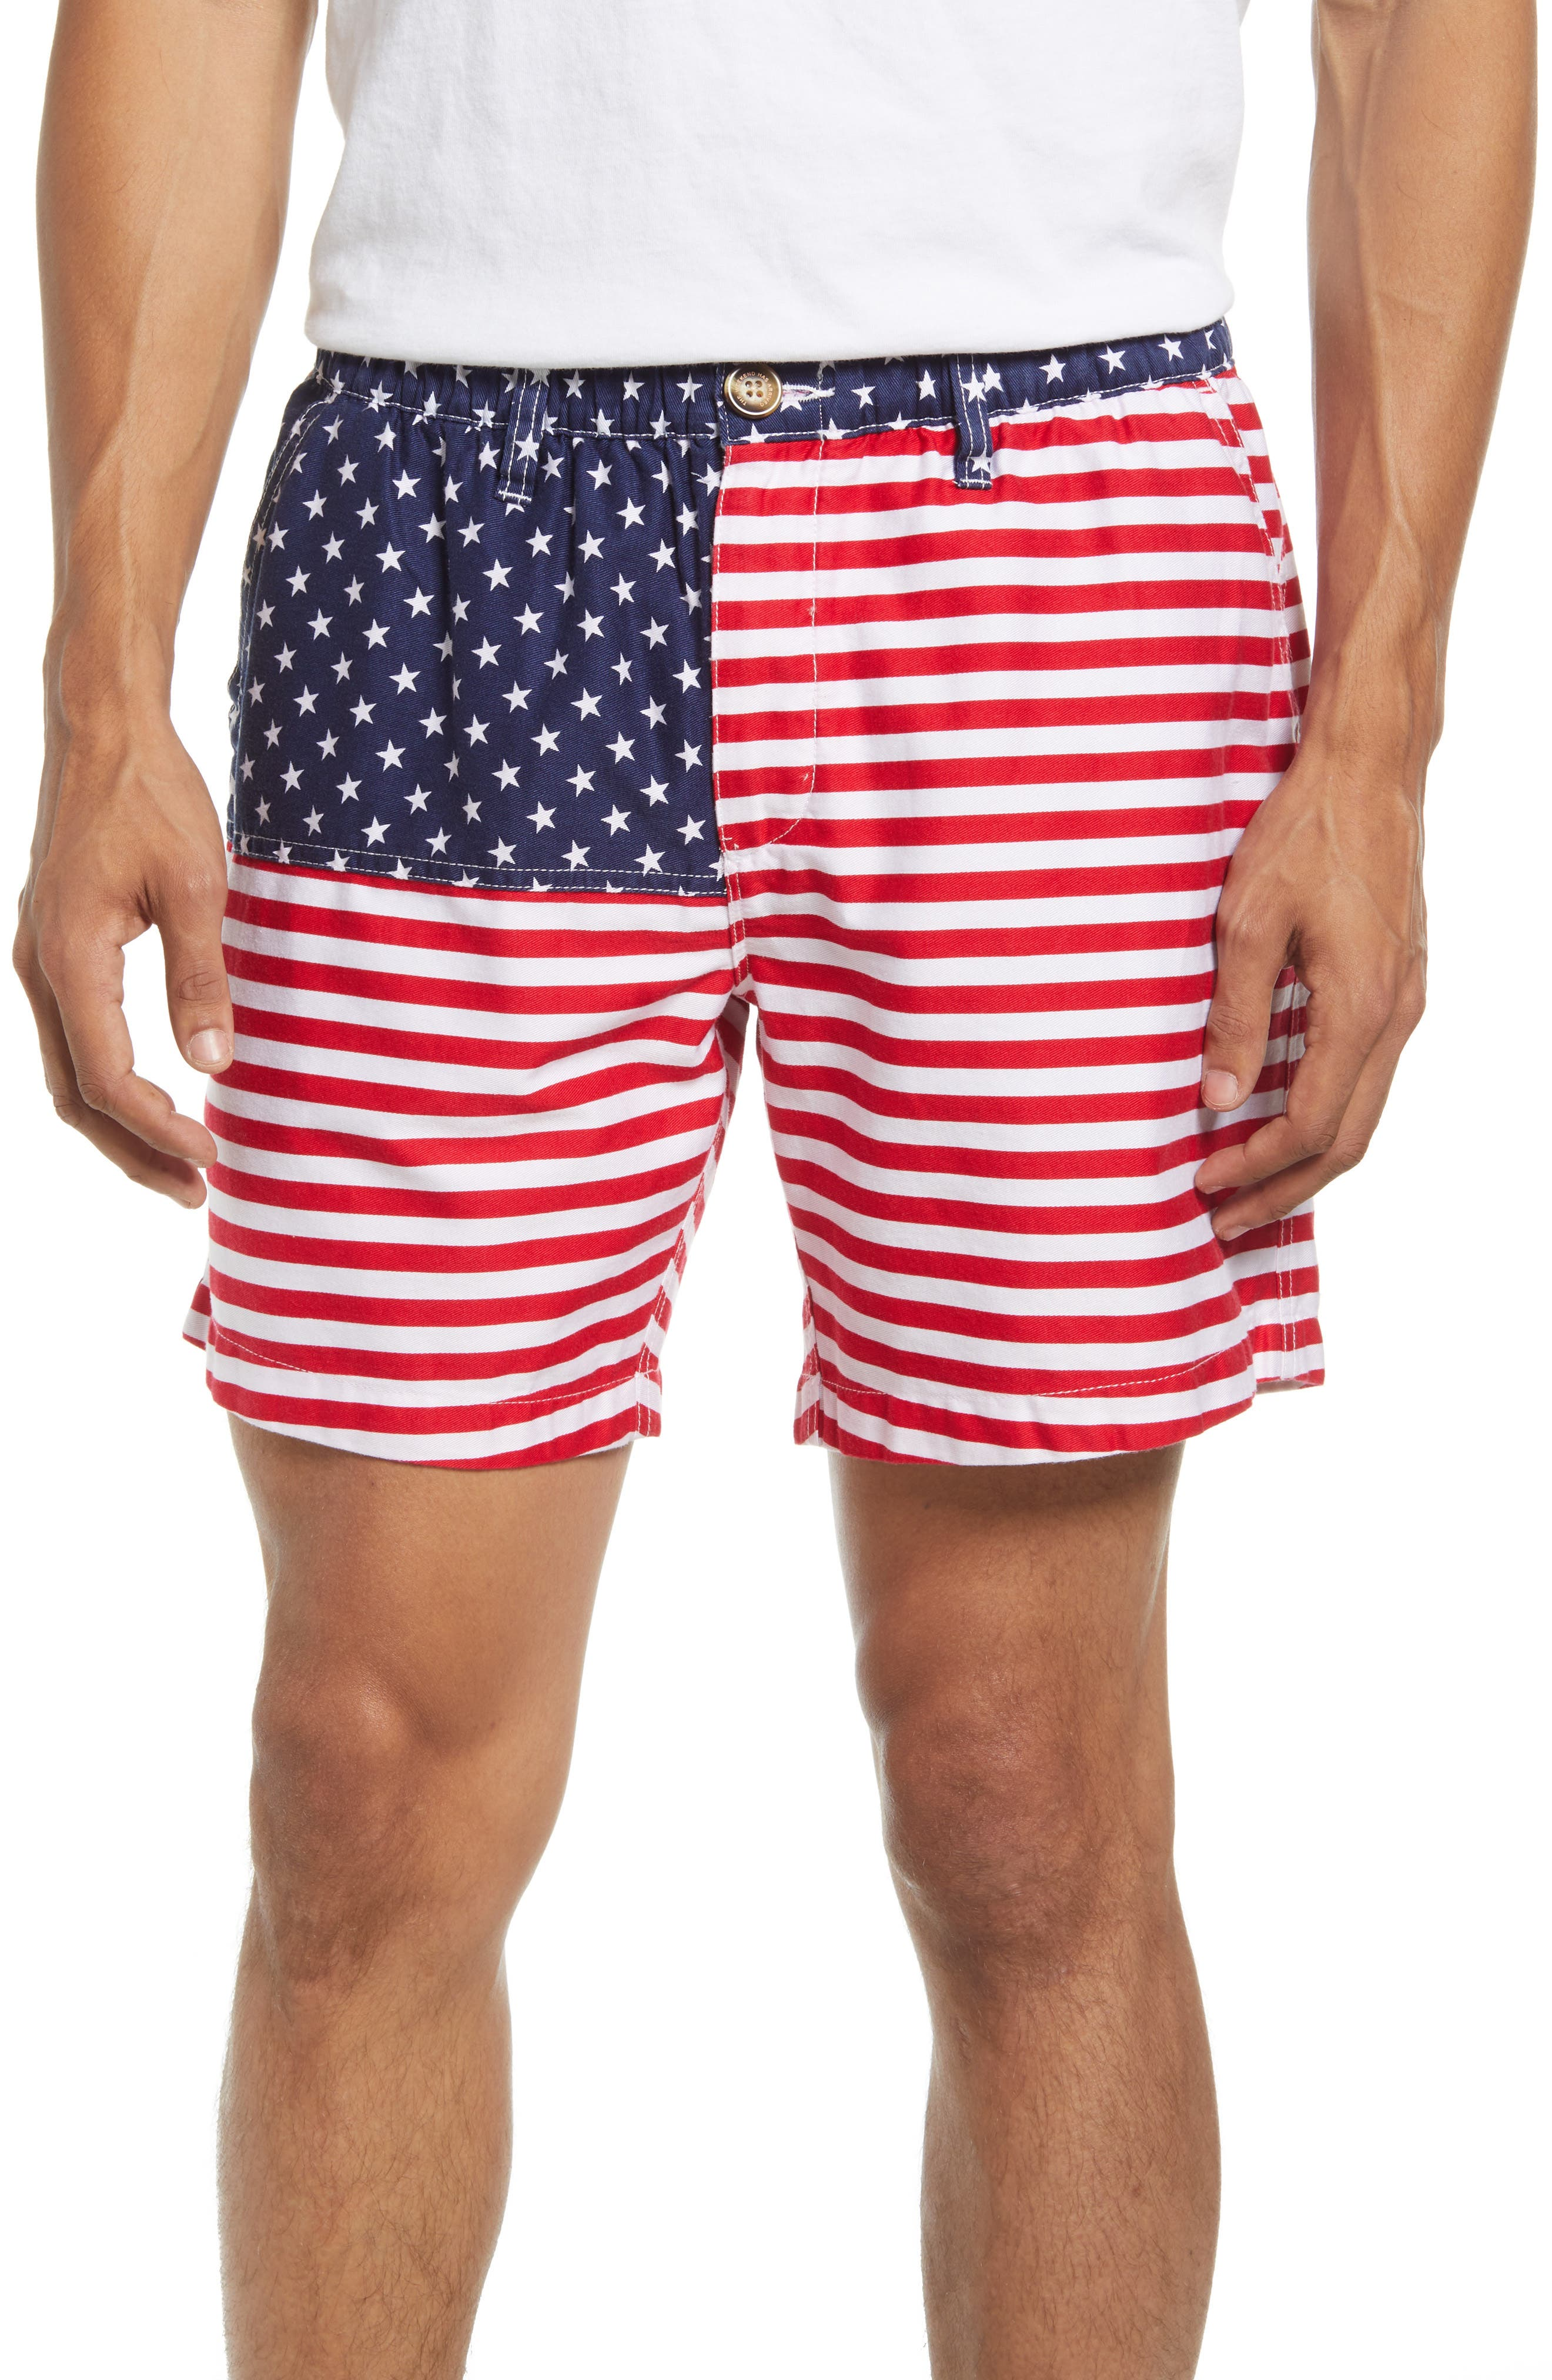 The Mericas 2.0 Shorts